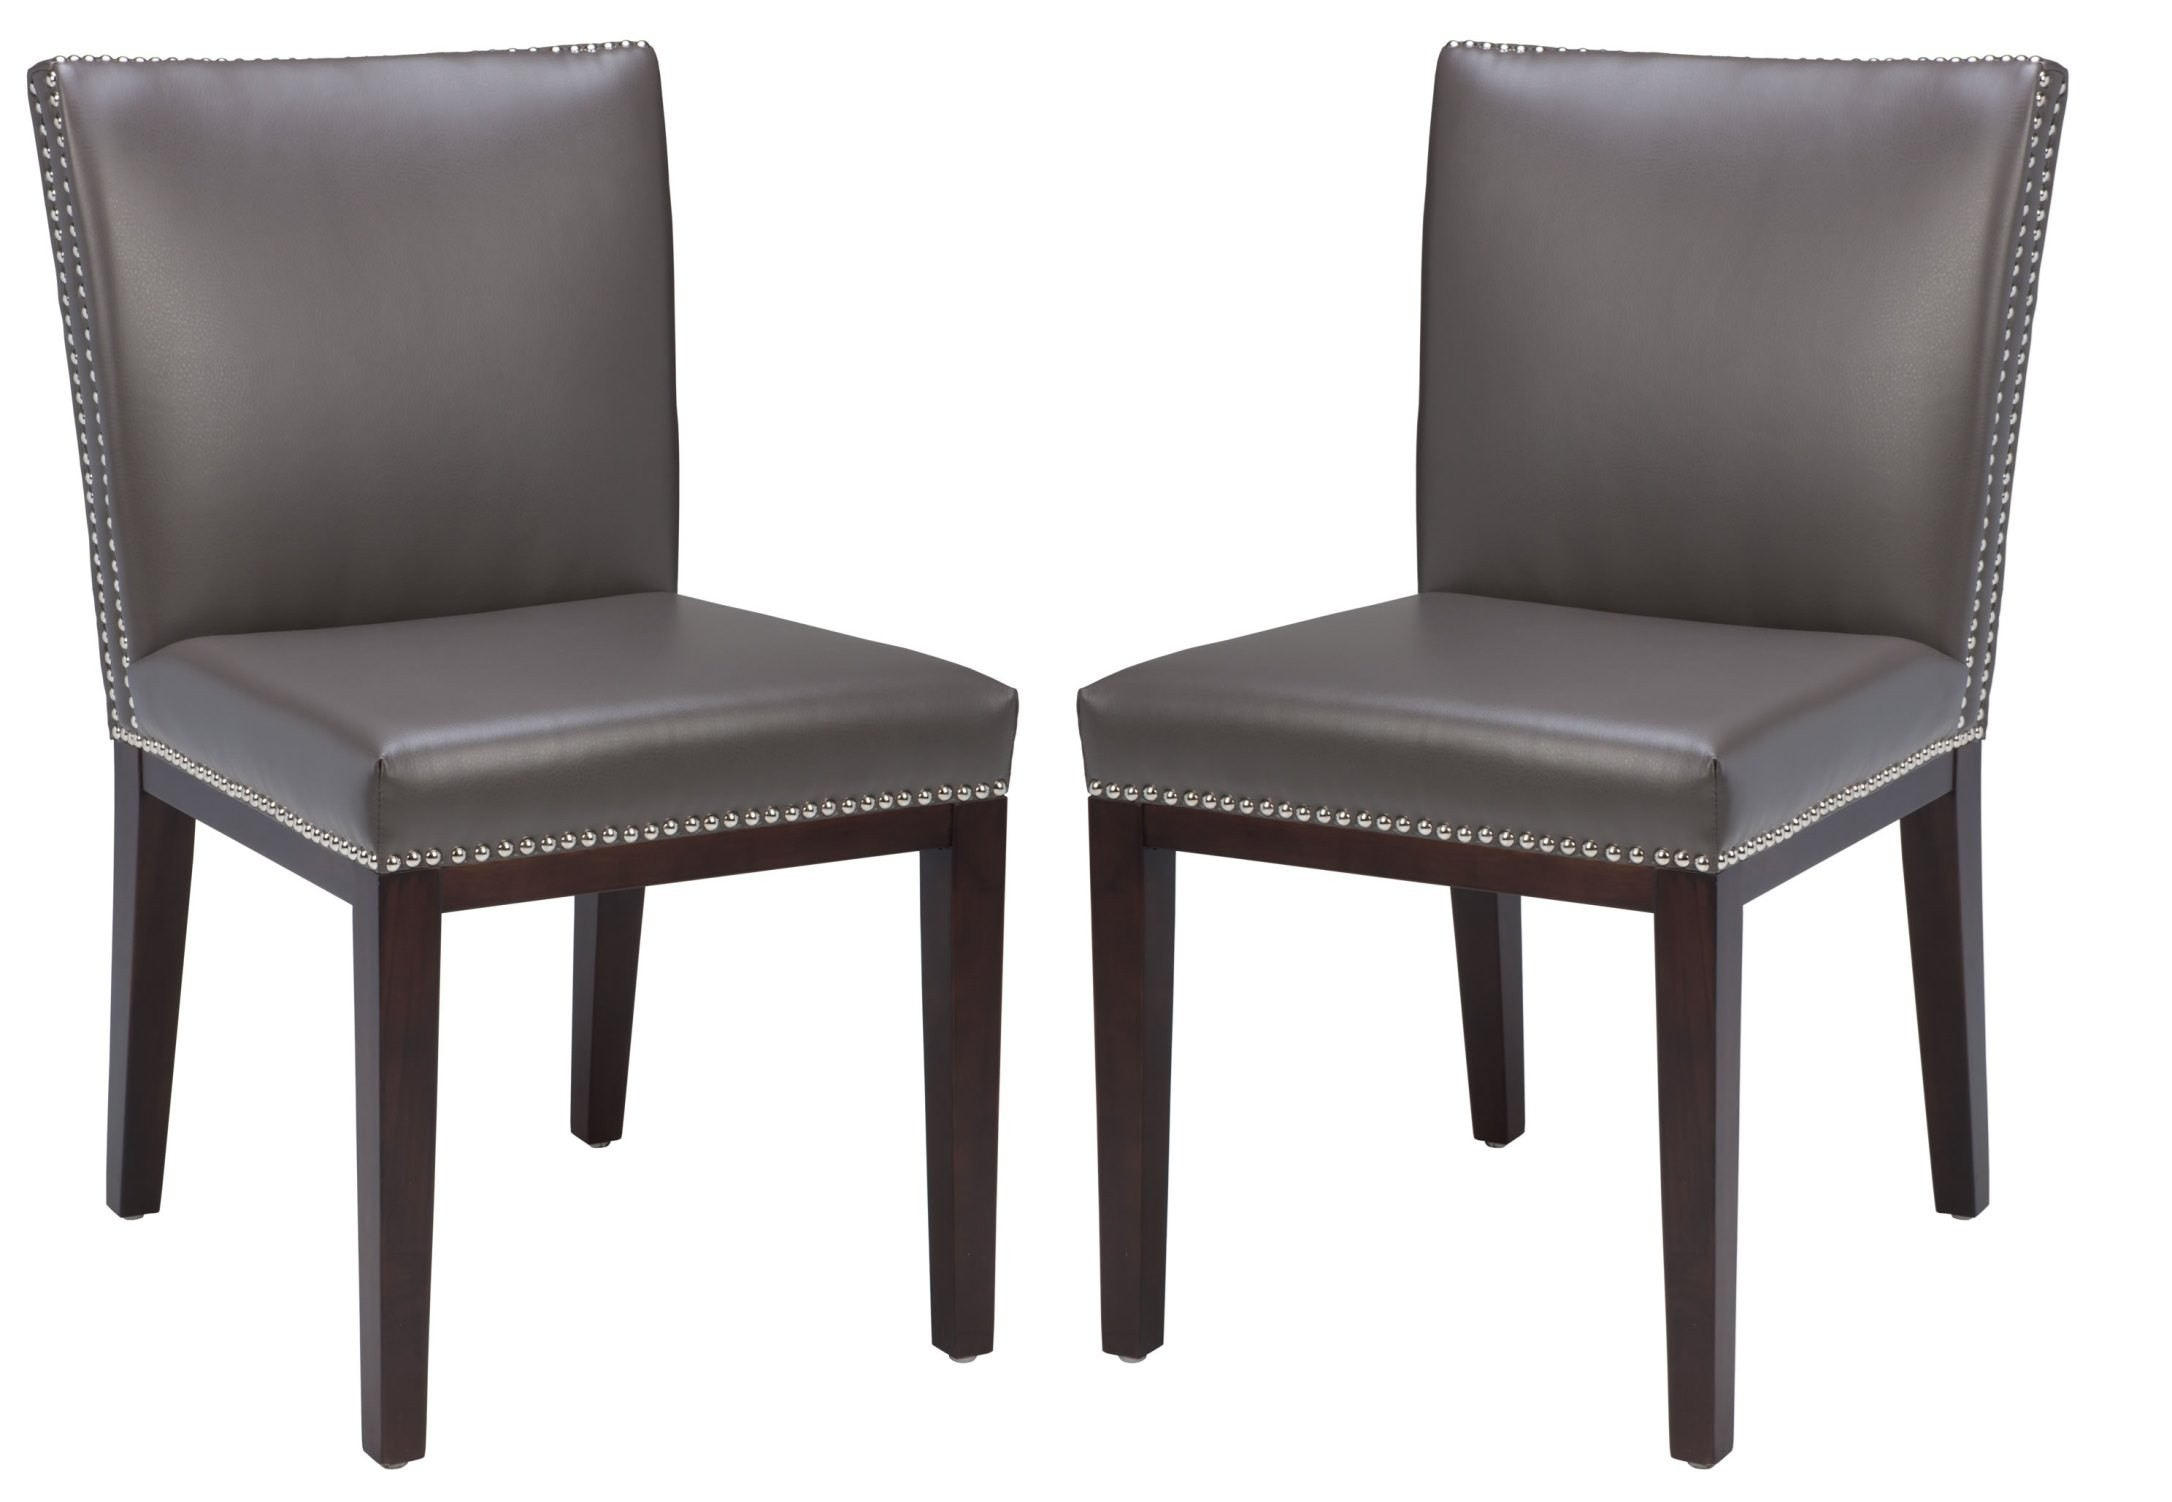 Dining Chairs Set Vintage Leather Grey Dining Chair Set Of 2 From Sunpan